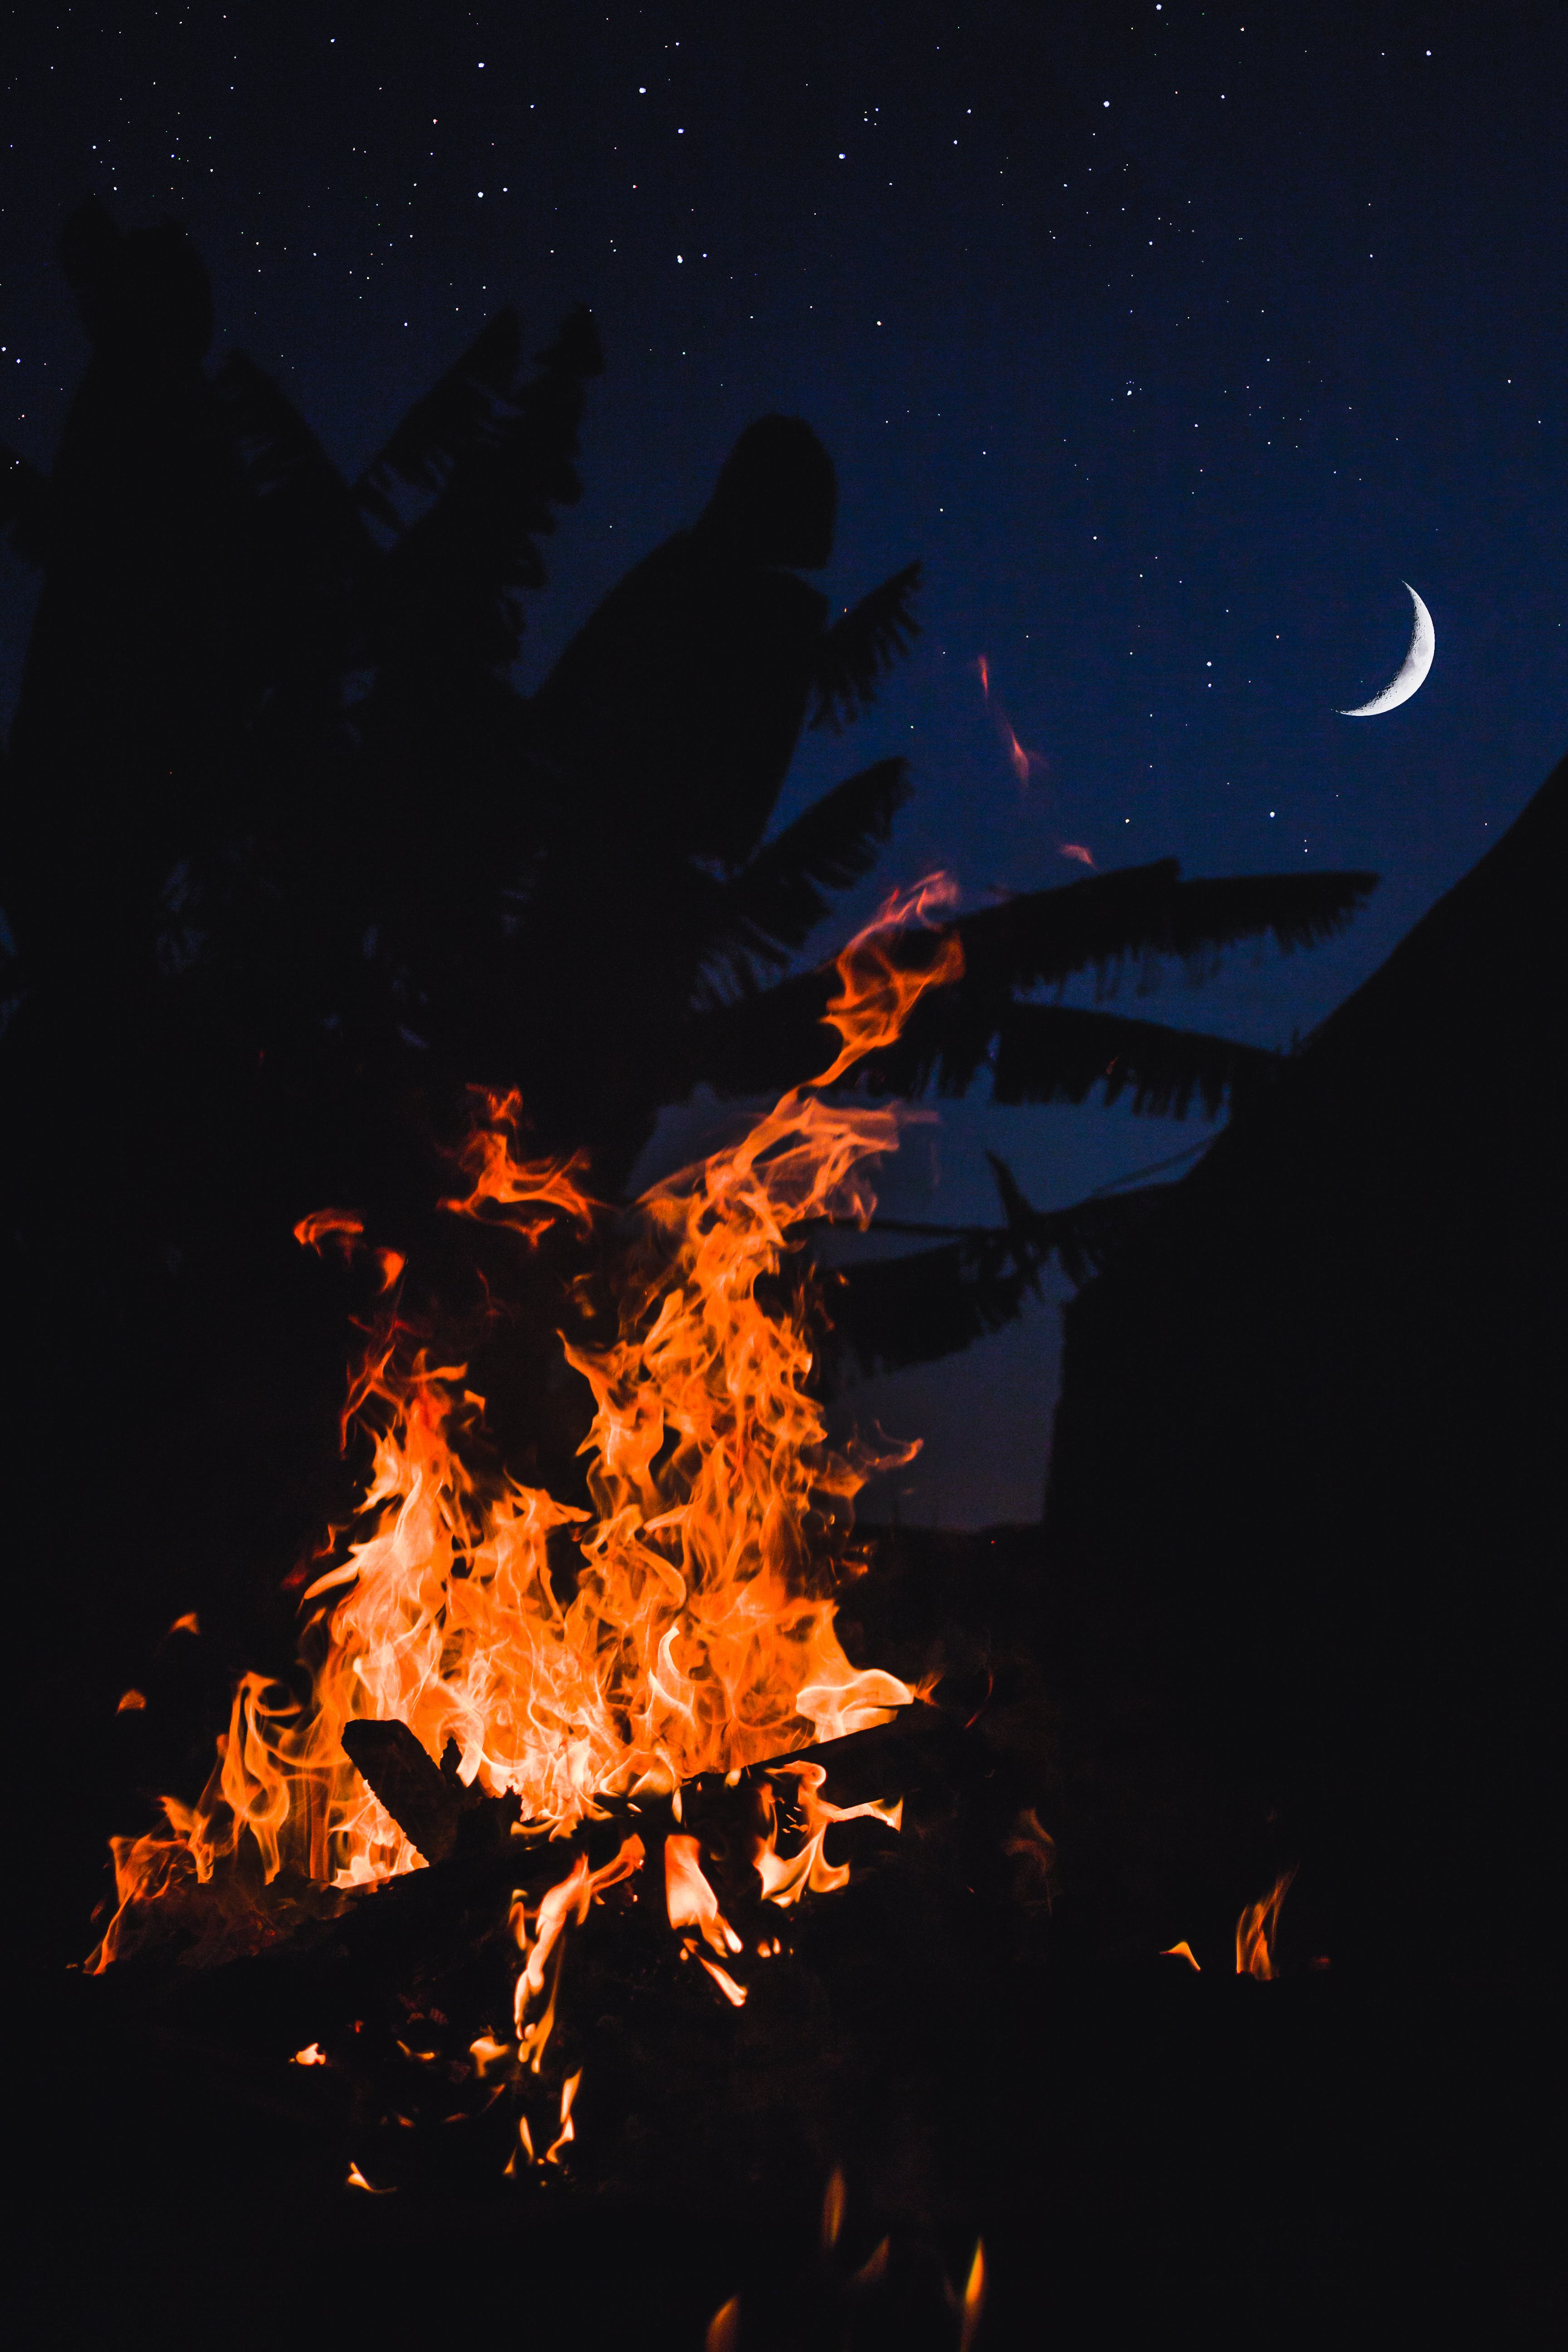 Bonfire Under Crescent Moon in the Sky